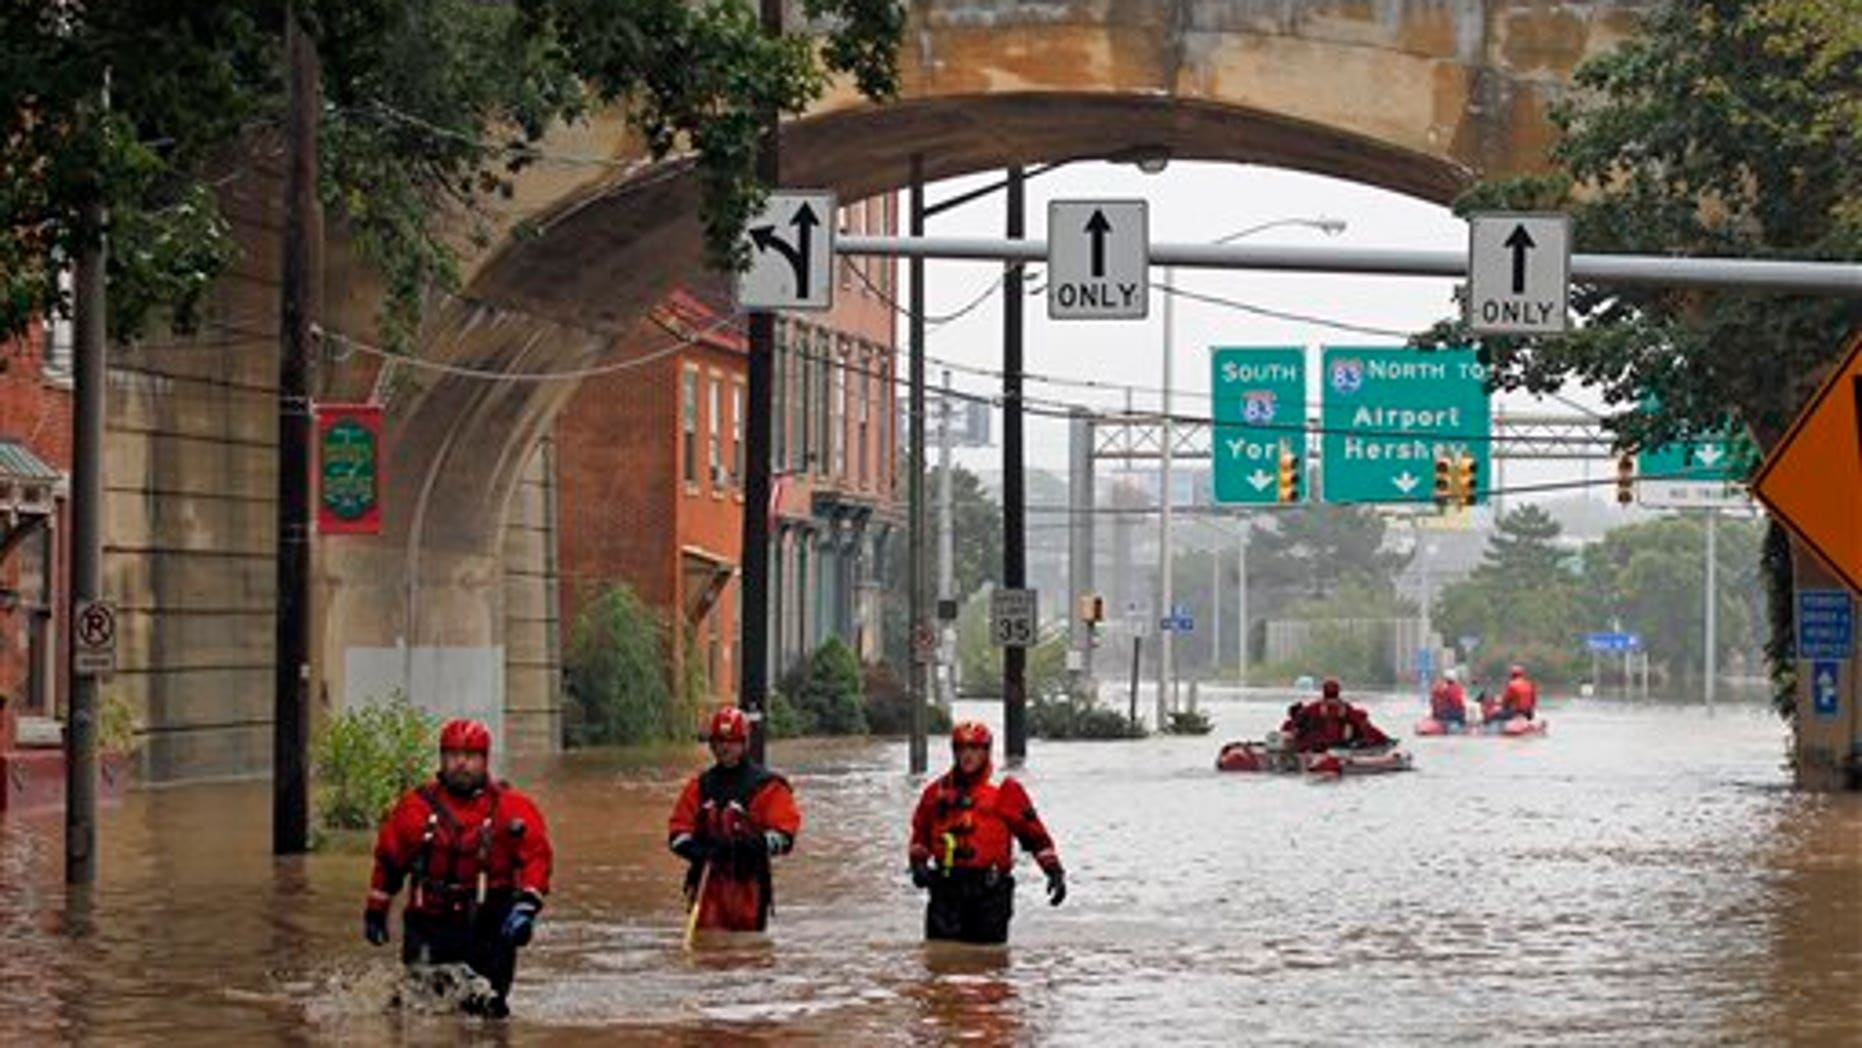 New York Pennsylvania See Receding Floodwaters While Maryland Braces For Worst Fox News